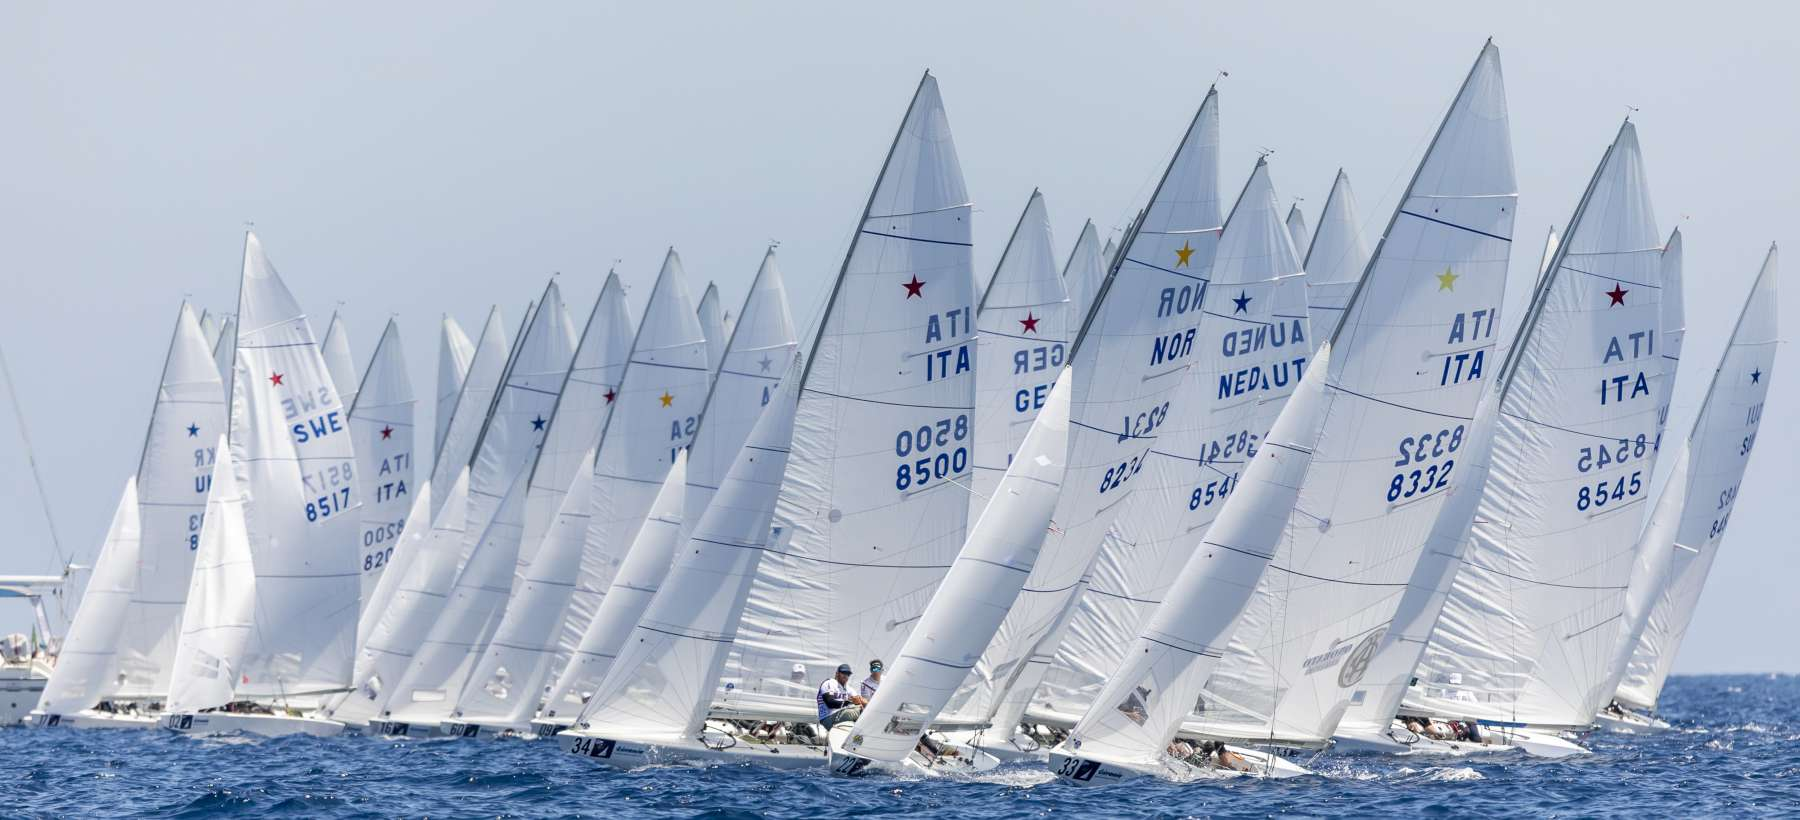 Campionato Mondiale Classe Star: partono in testa due team italiani  - NEWS - Yacht Club Costa Smeralda